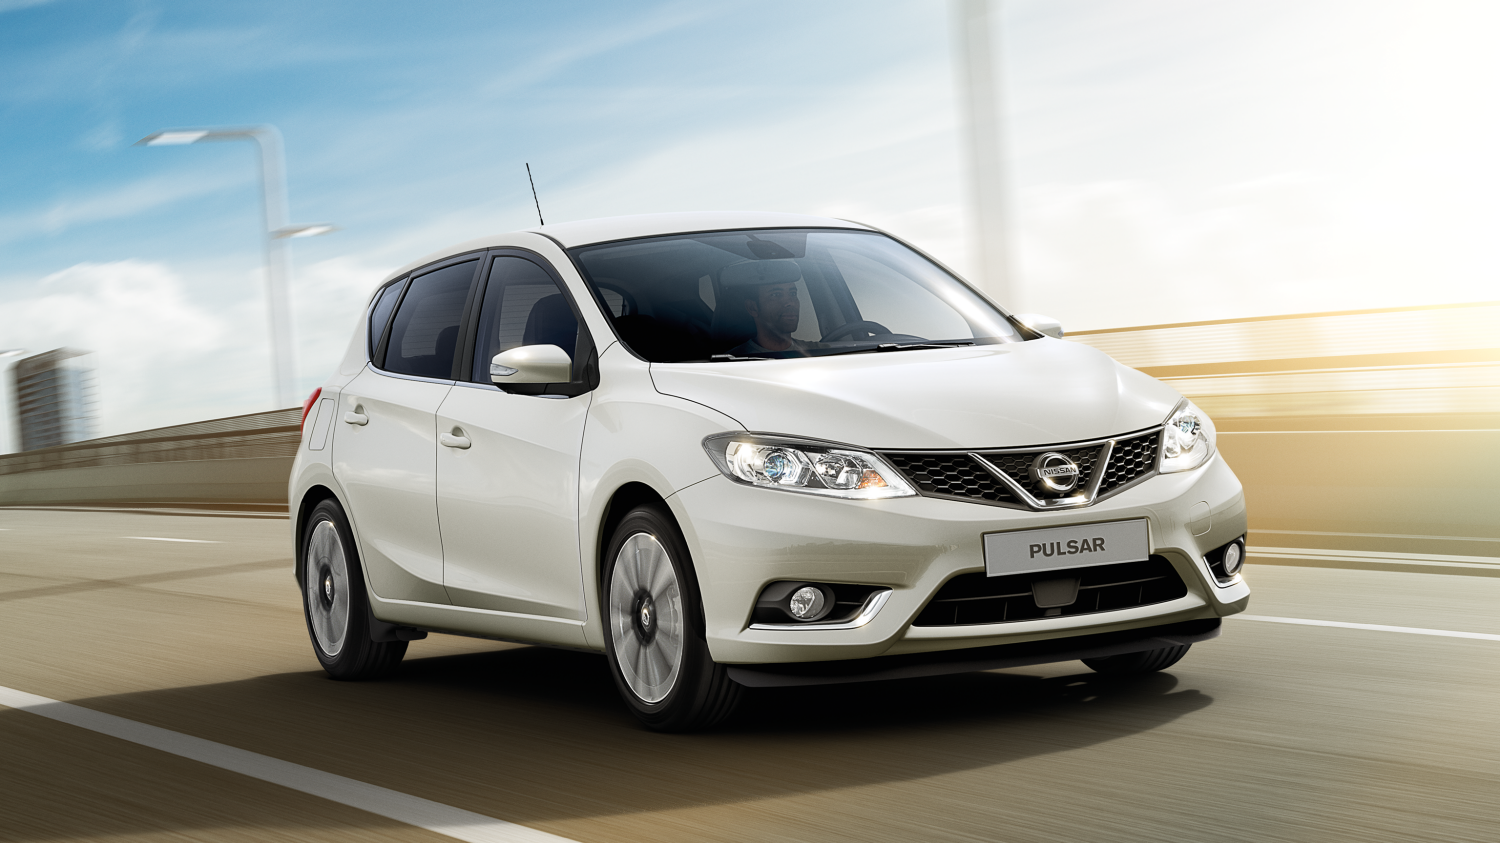 Nissan Pulsar Pearl White - 3/4 Front on Road